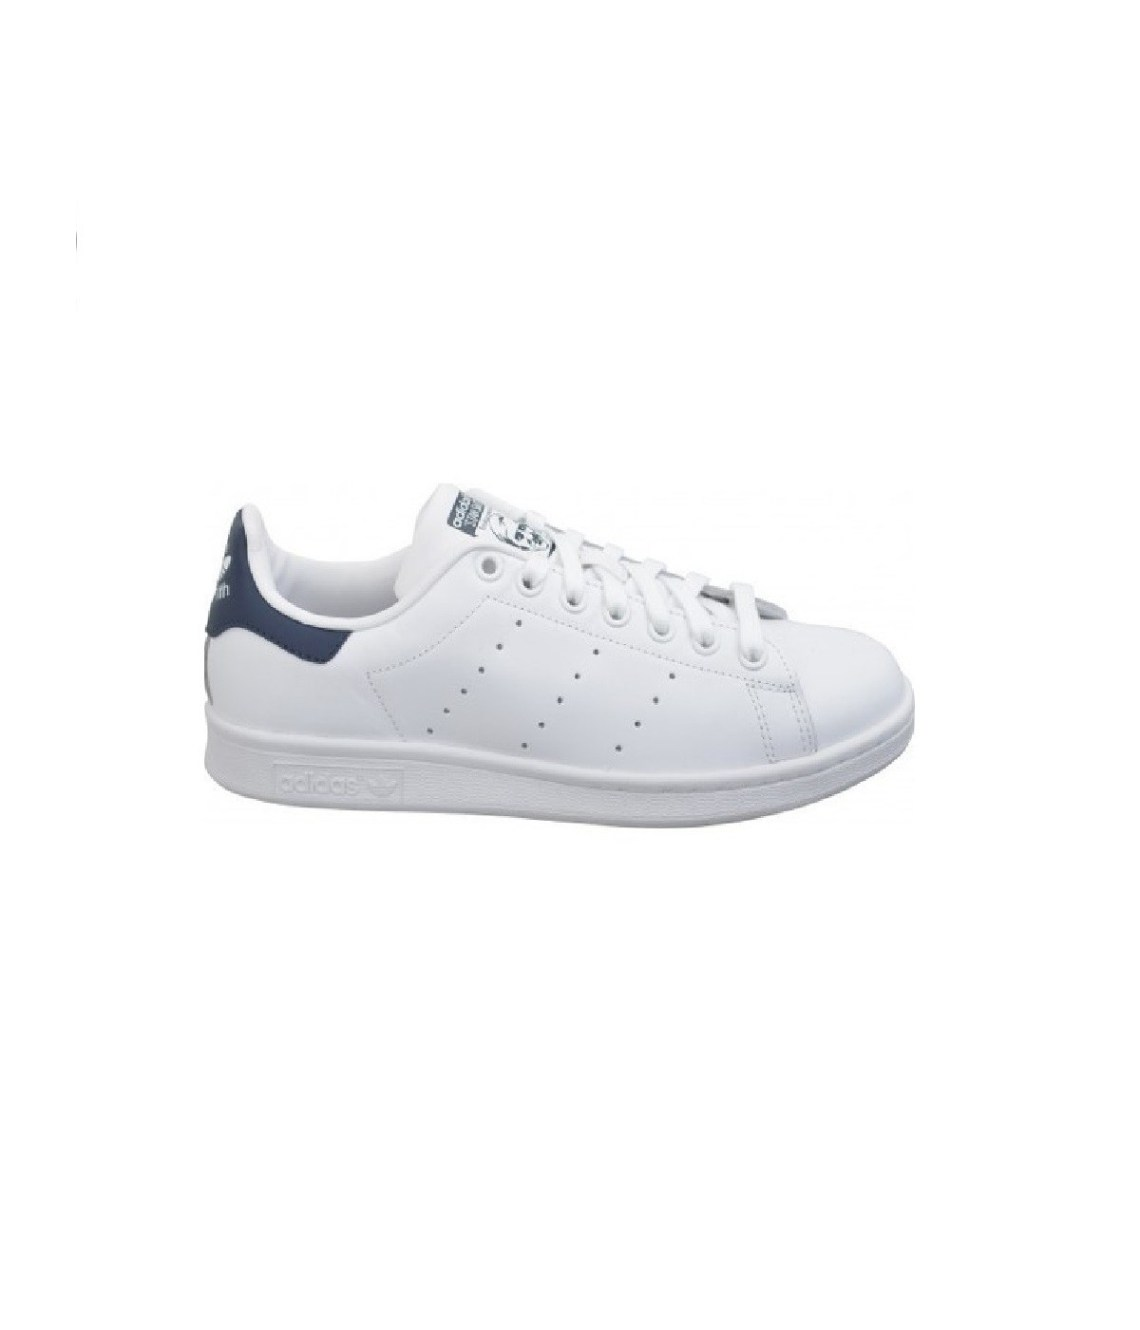 Adidas Baskets Homme 1